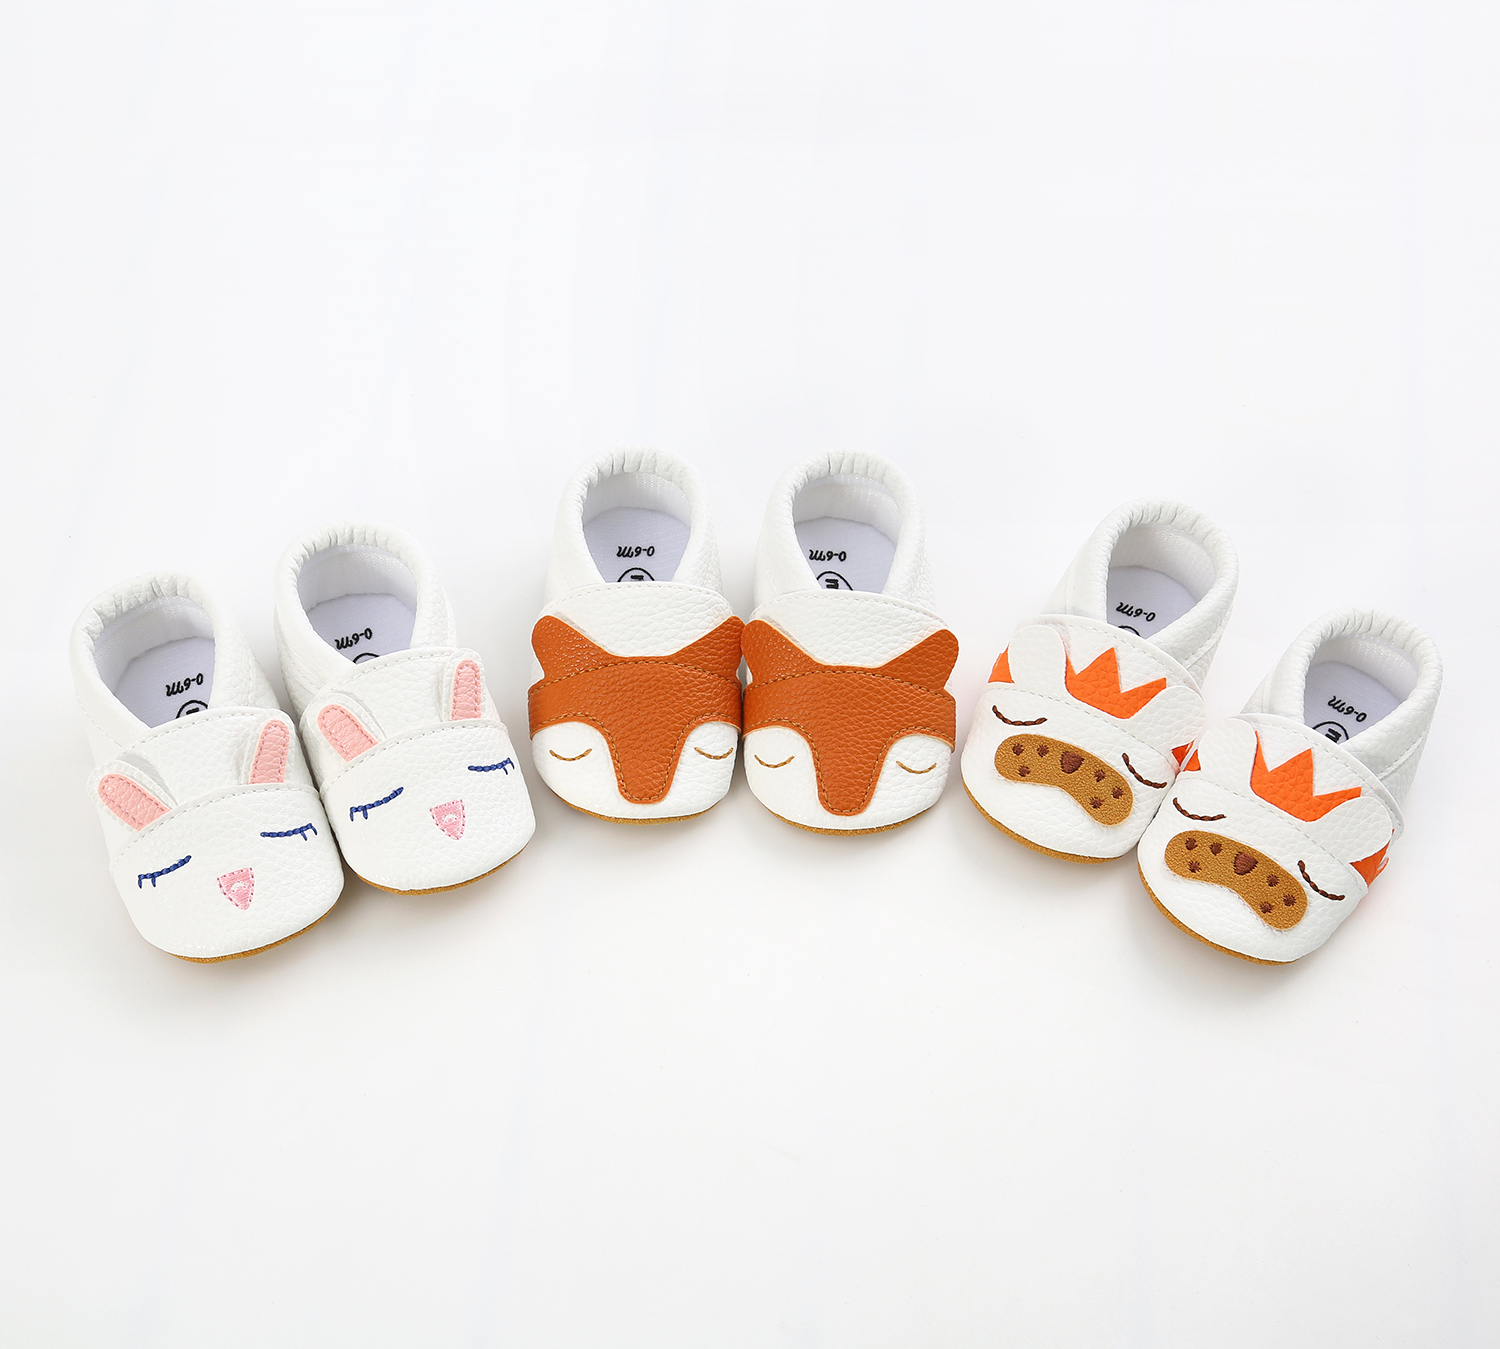 2020 New Babies Shoes Pu Leather Toddler Moccasins  Baby Boys Booties  Infant Girls Shoes Newborn Crib Shoes First Walkers